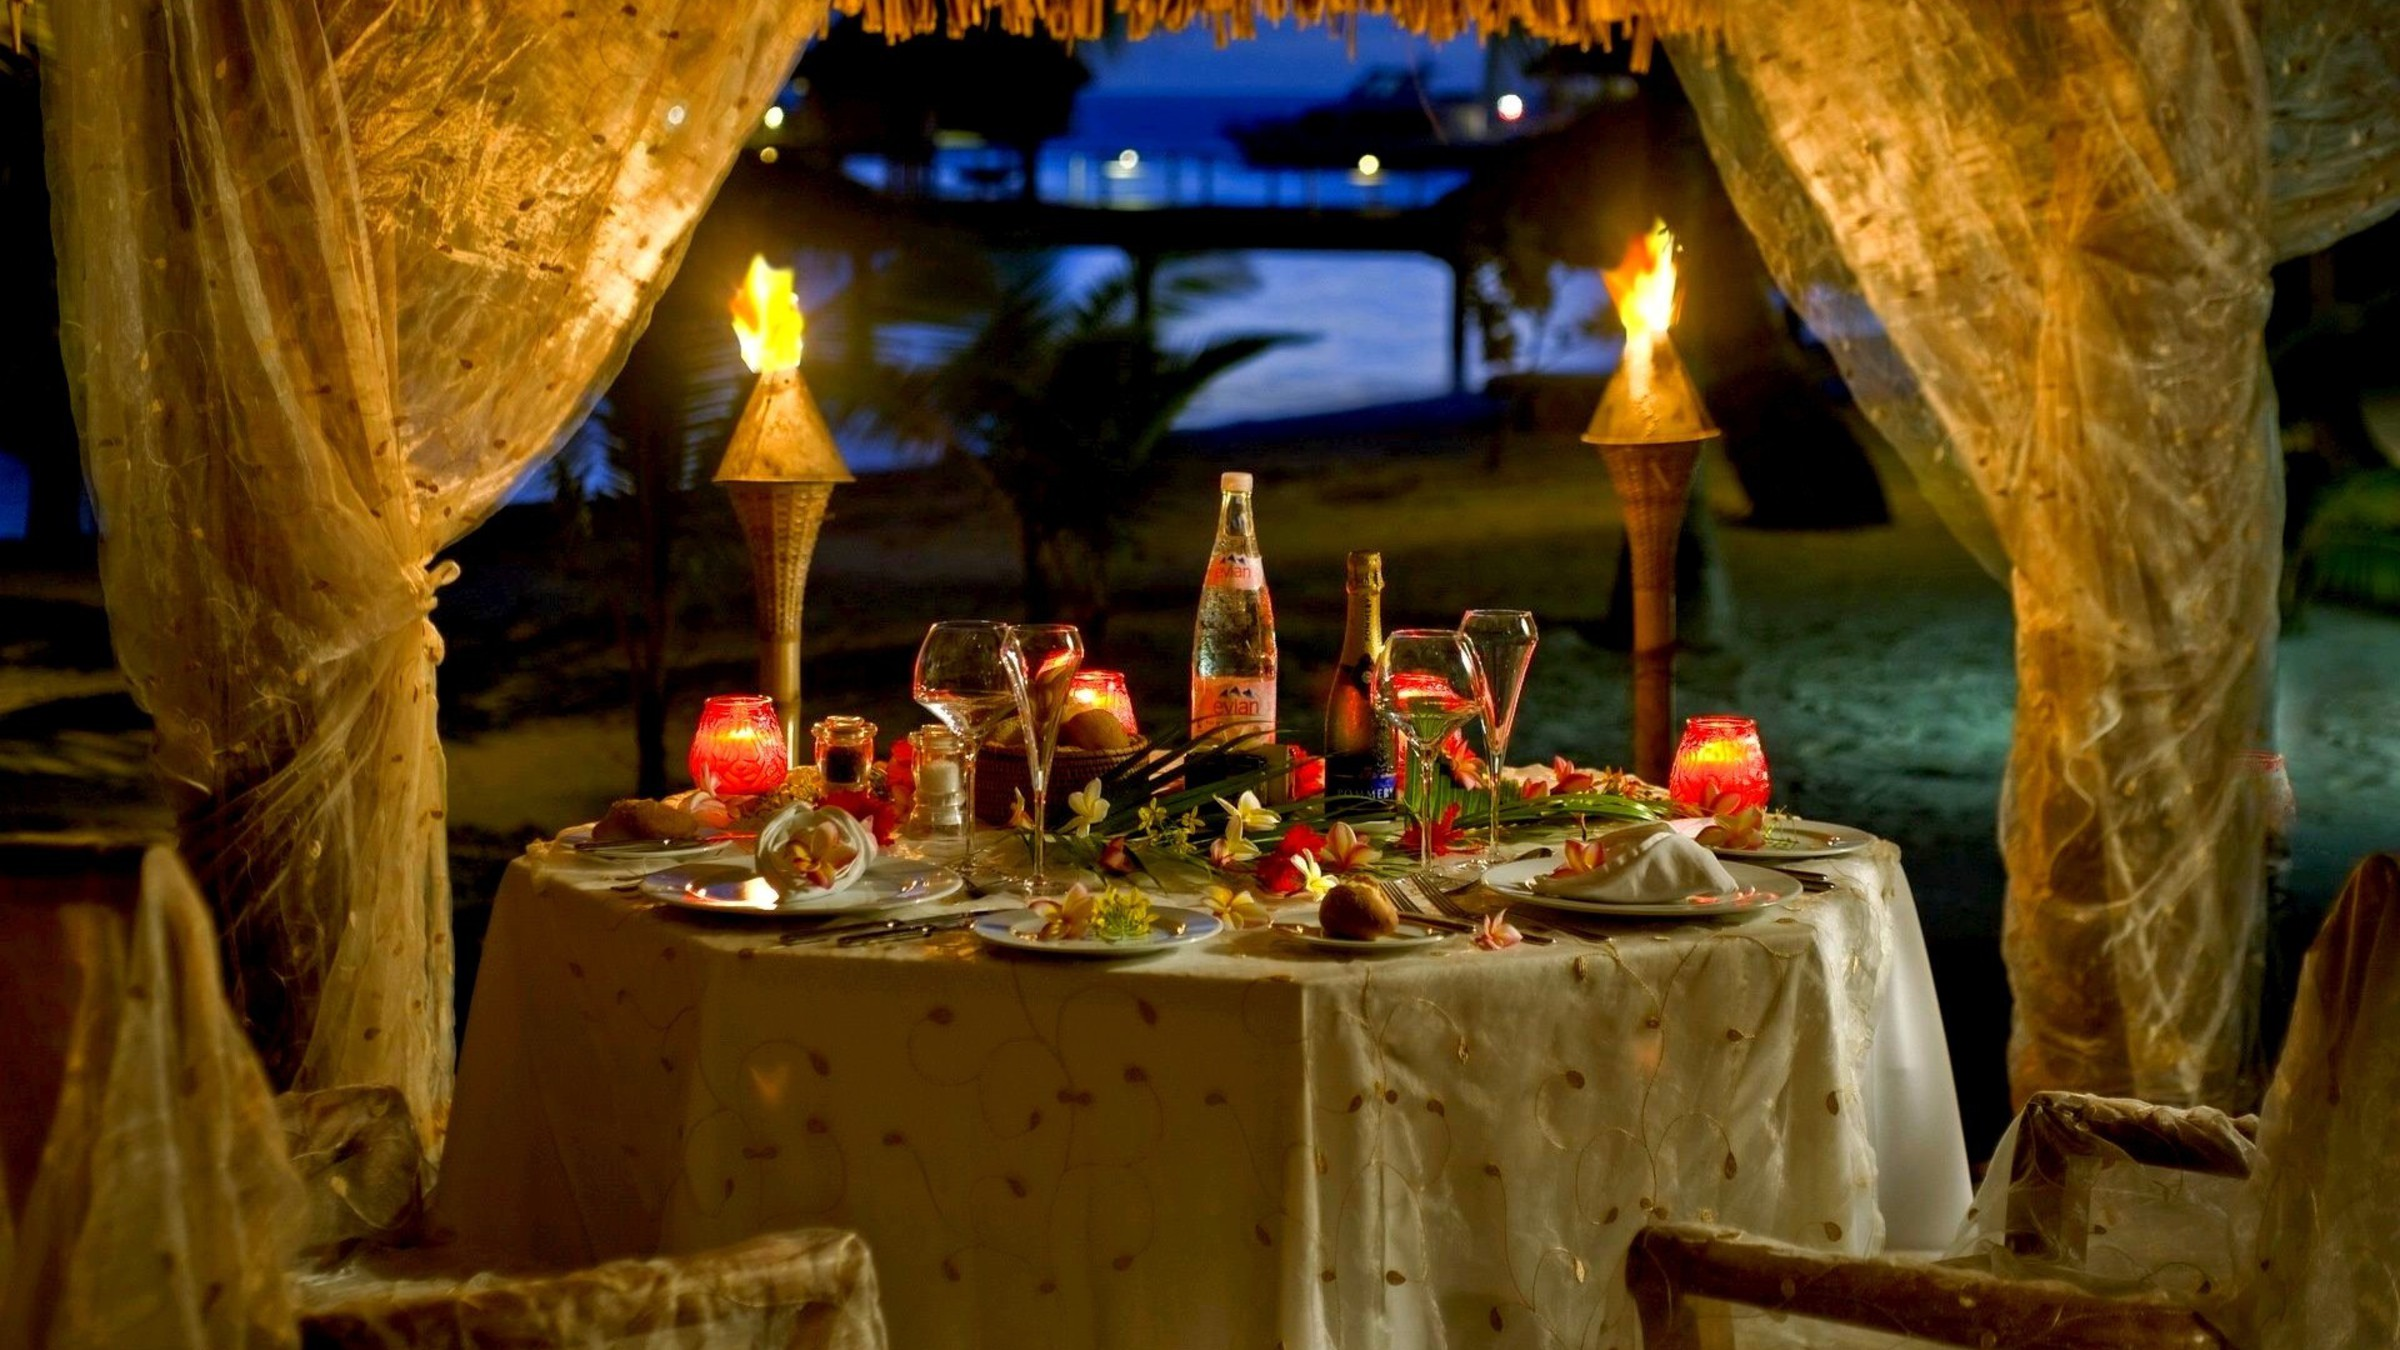 romantic dinner wallpaper for - photo #21